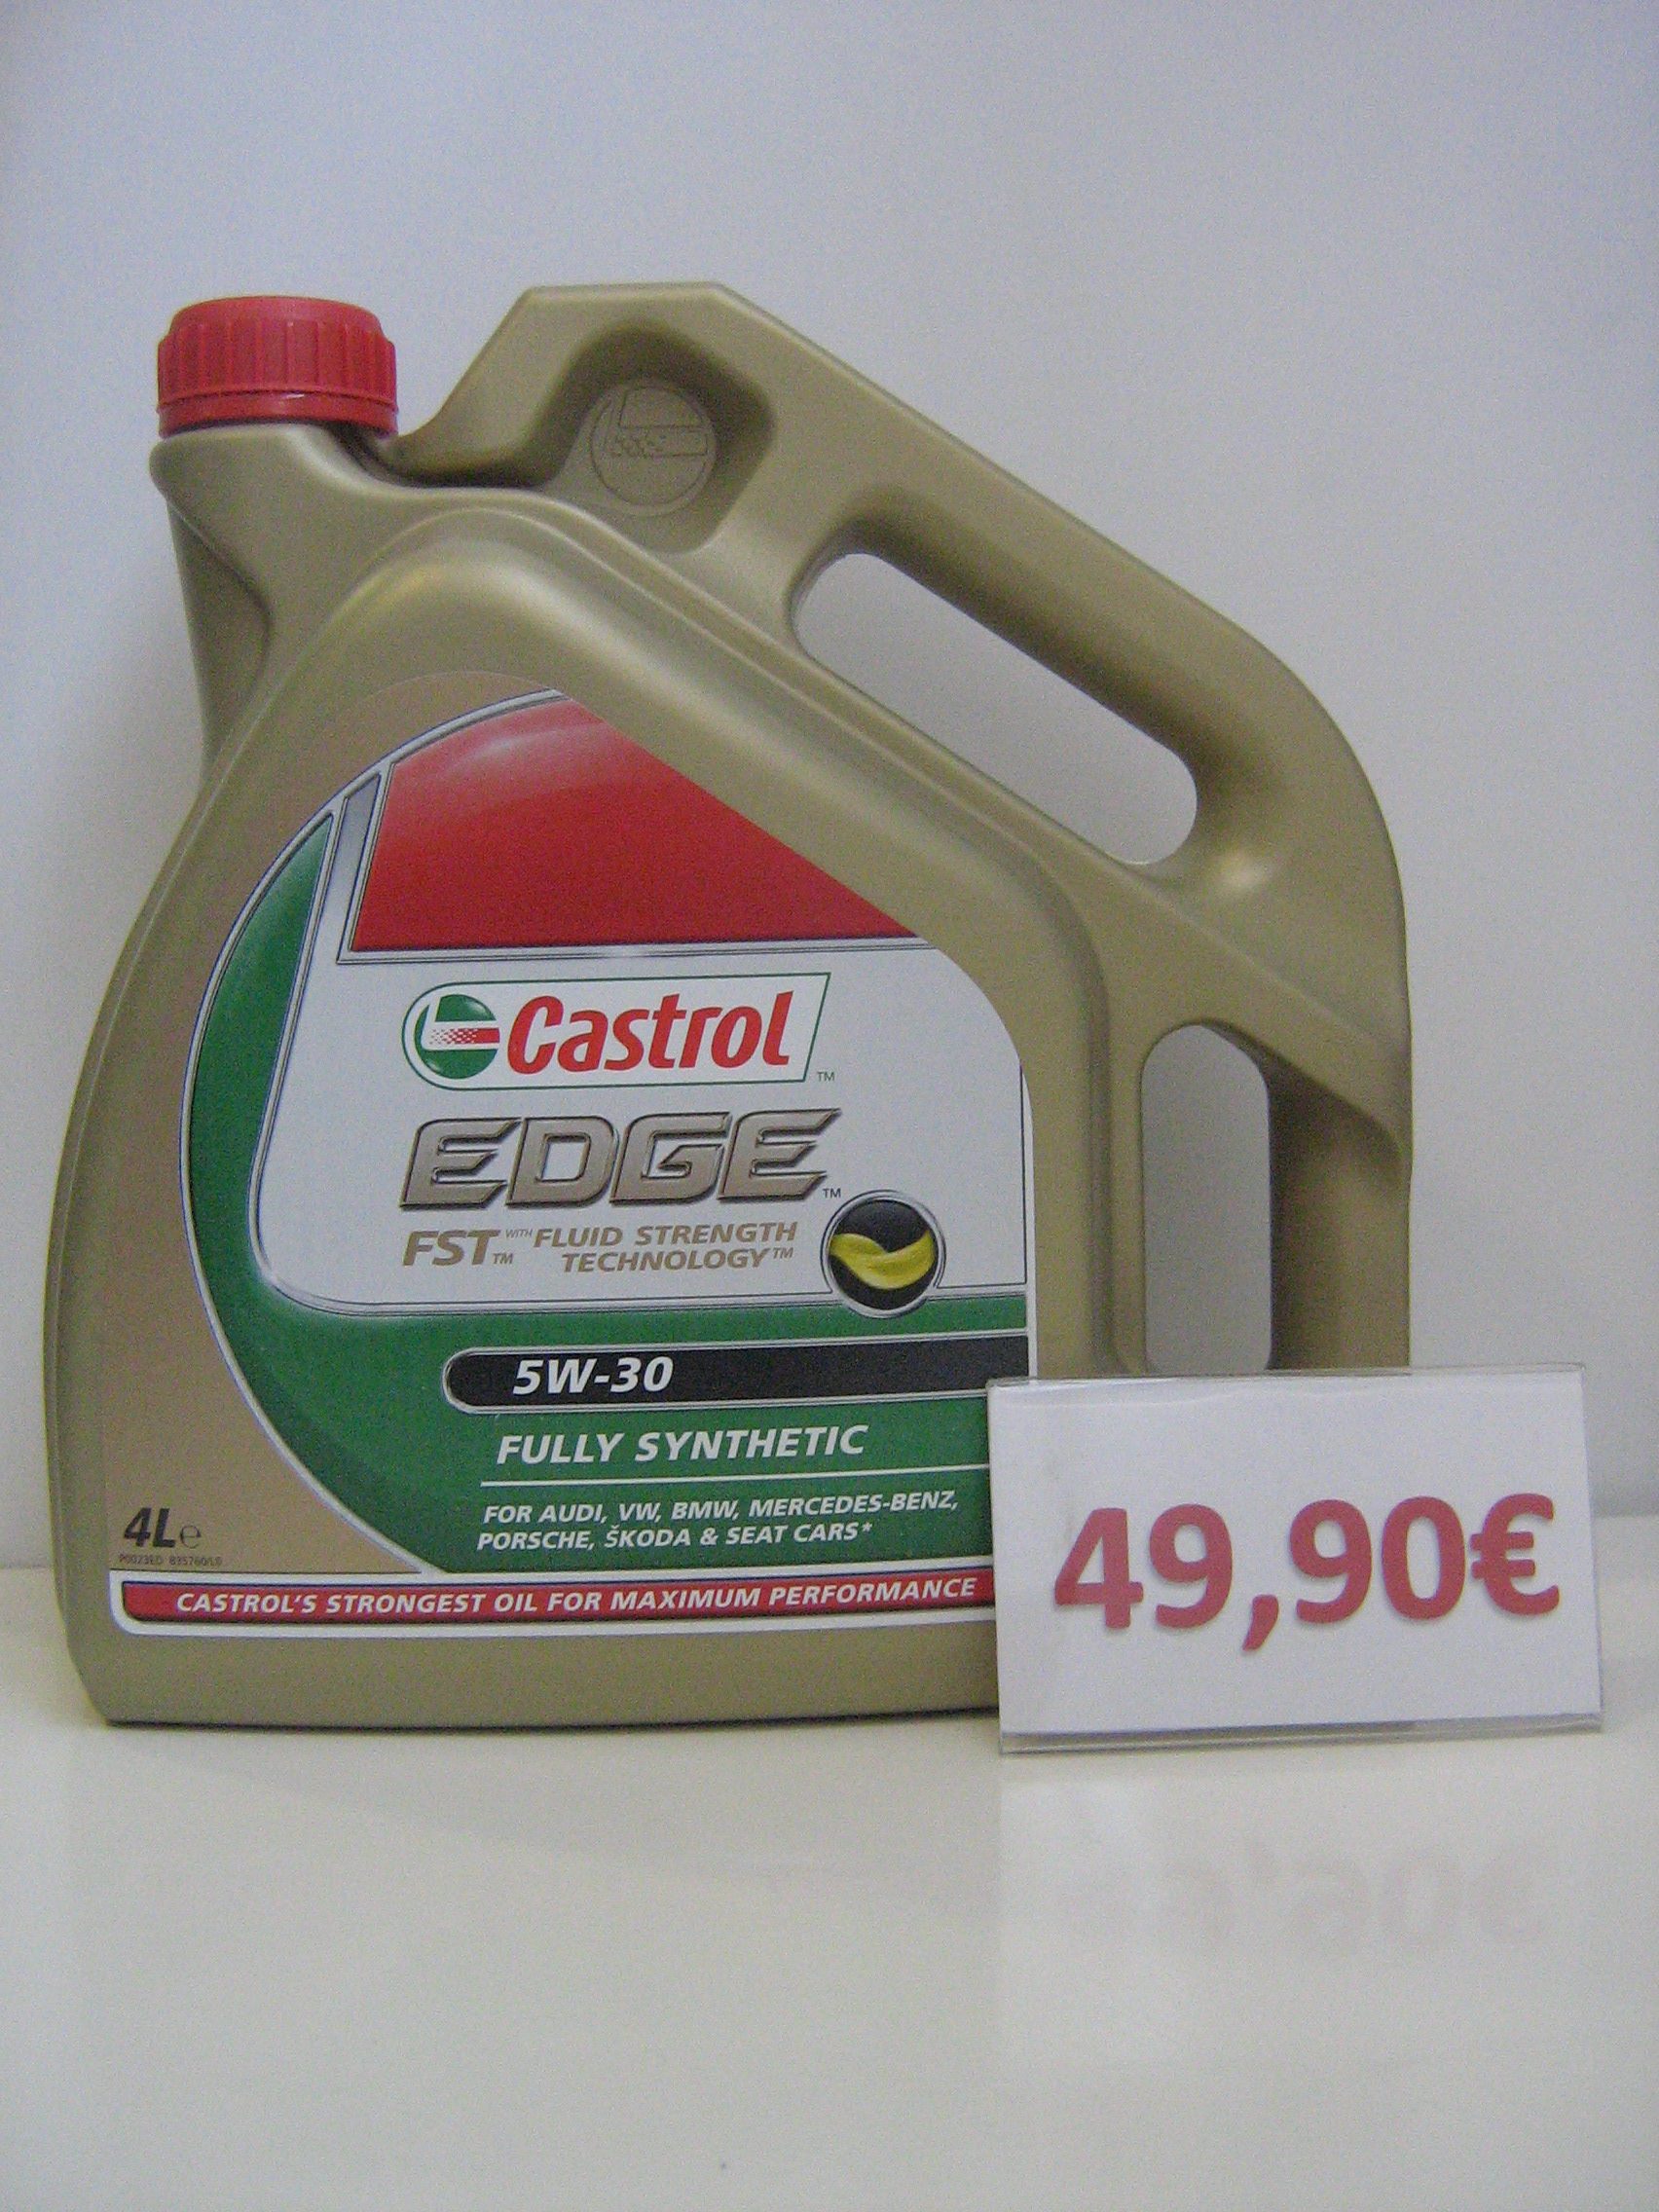 CASTROL 5W30 (LONG LIFE).: Servicios de Safety Car